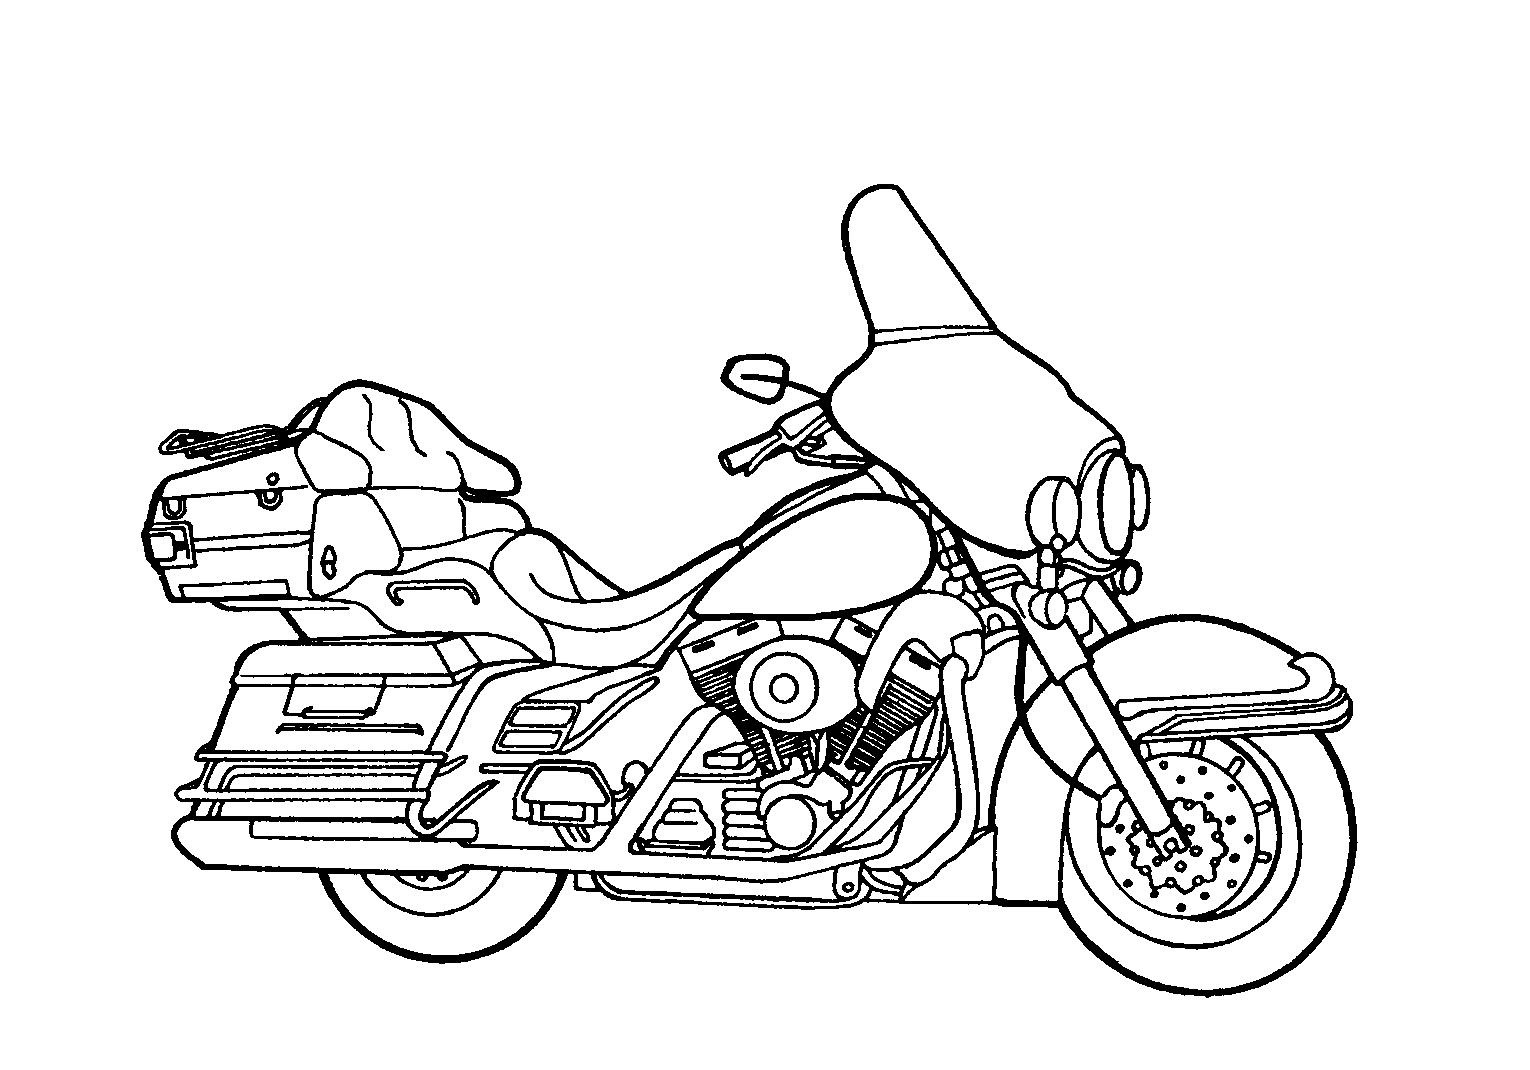 harley davidson coloring pages 1000 images about harley on pinterest harley davidson pages harley coloring davidson